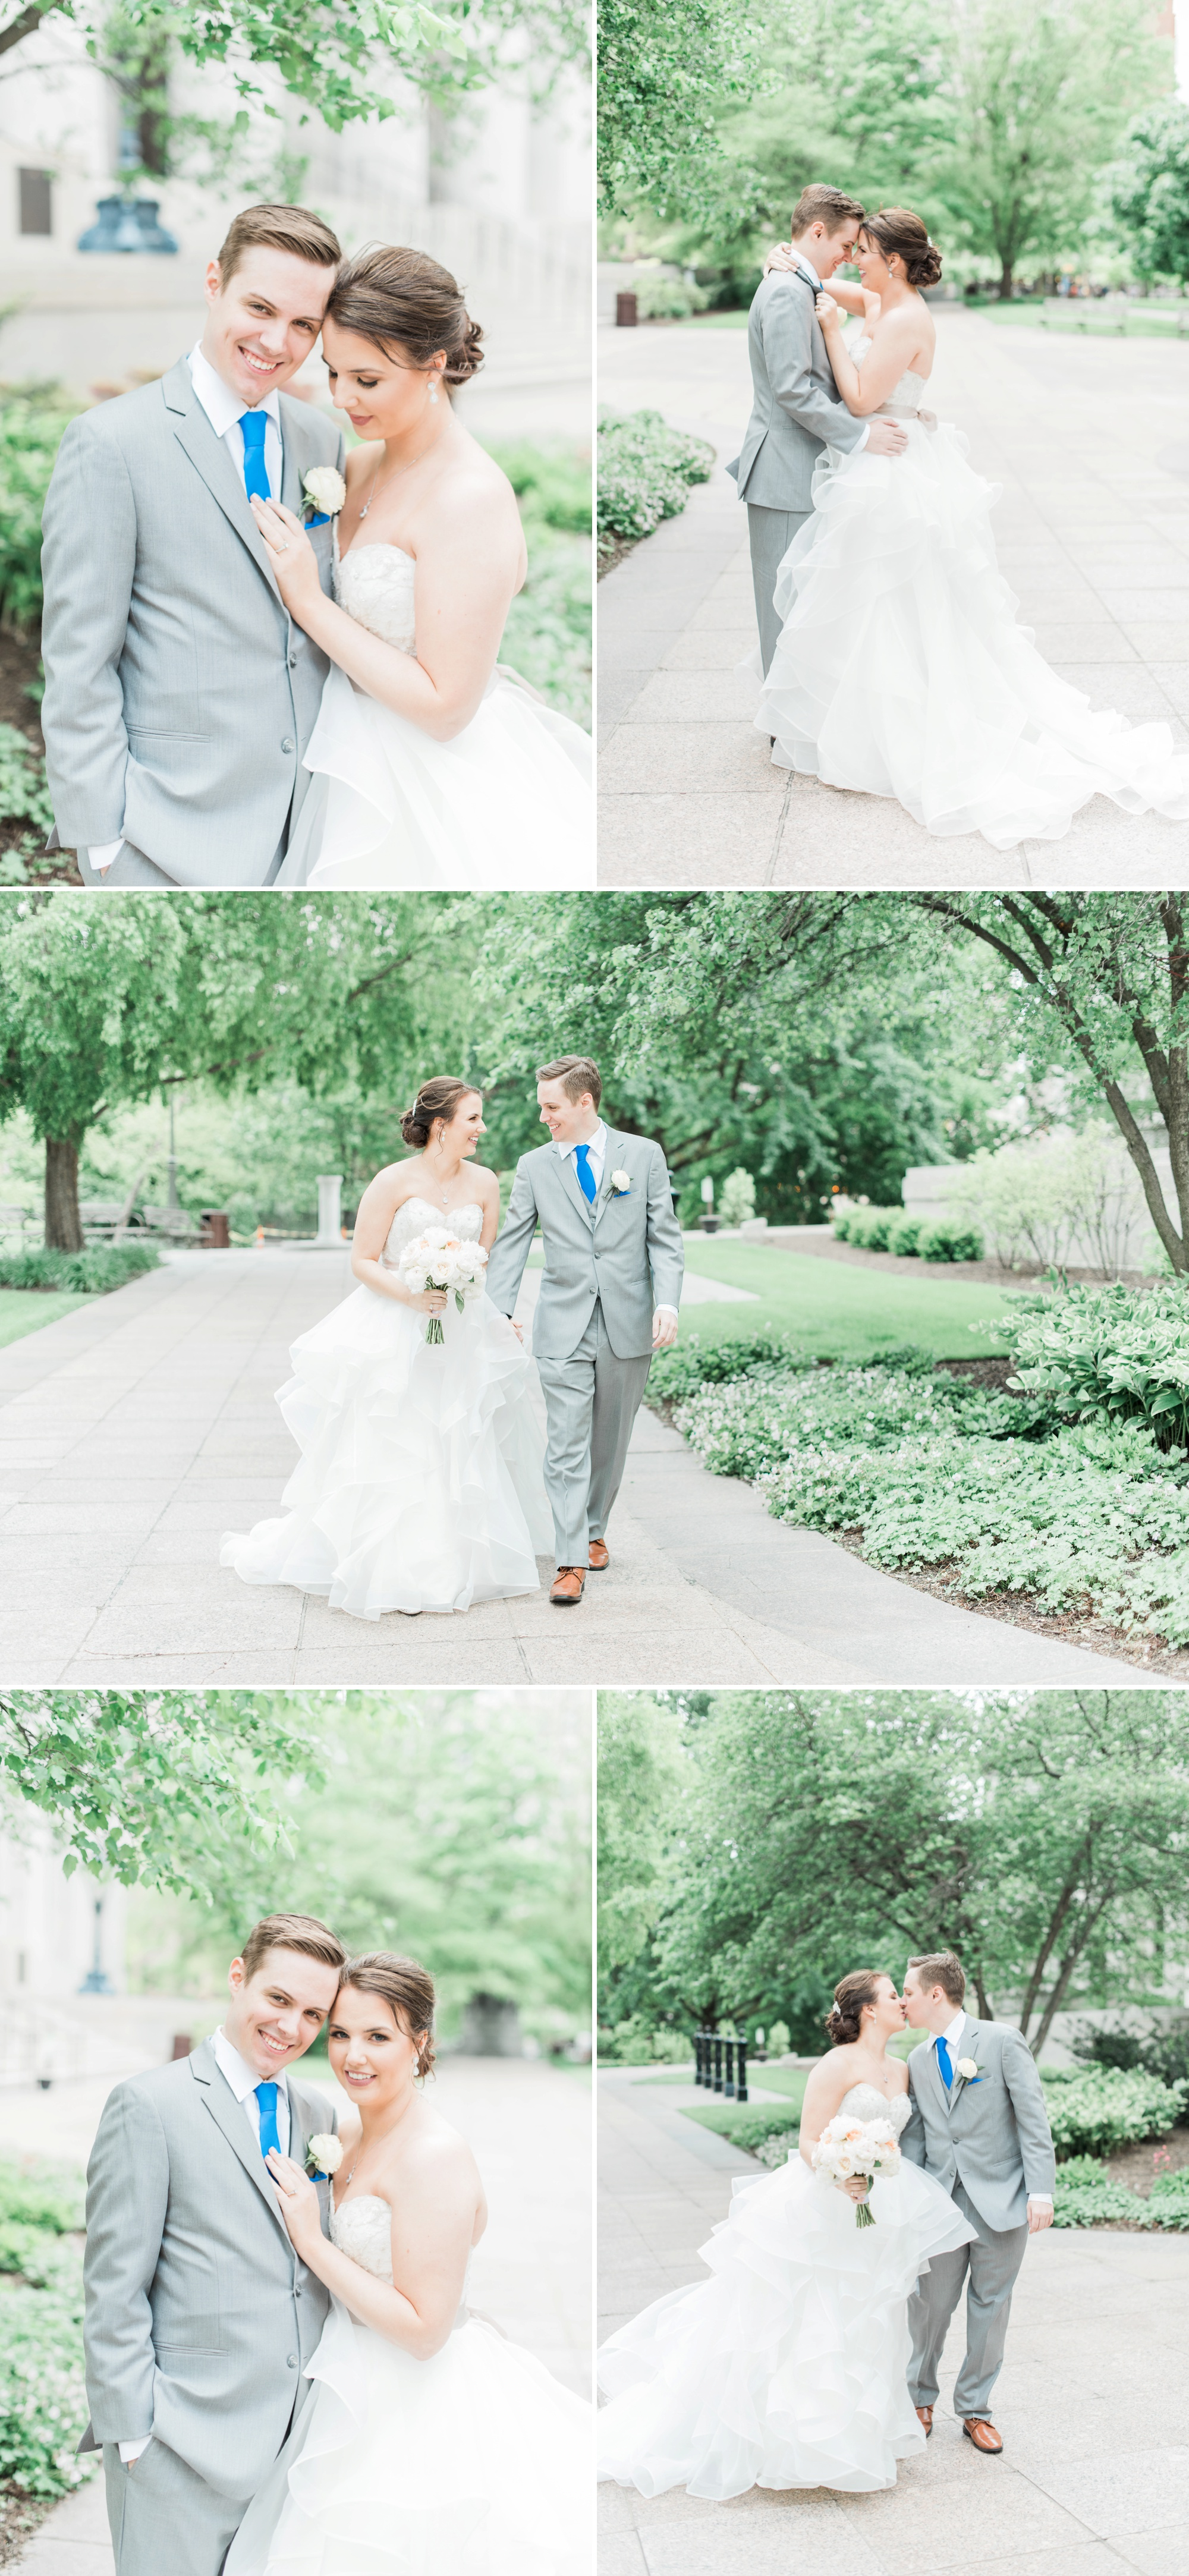 the-vault-columbus-ohio-wedding-emily-chris_0018.jpg